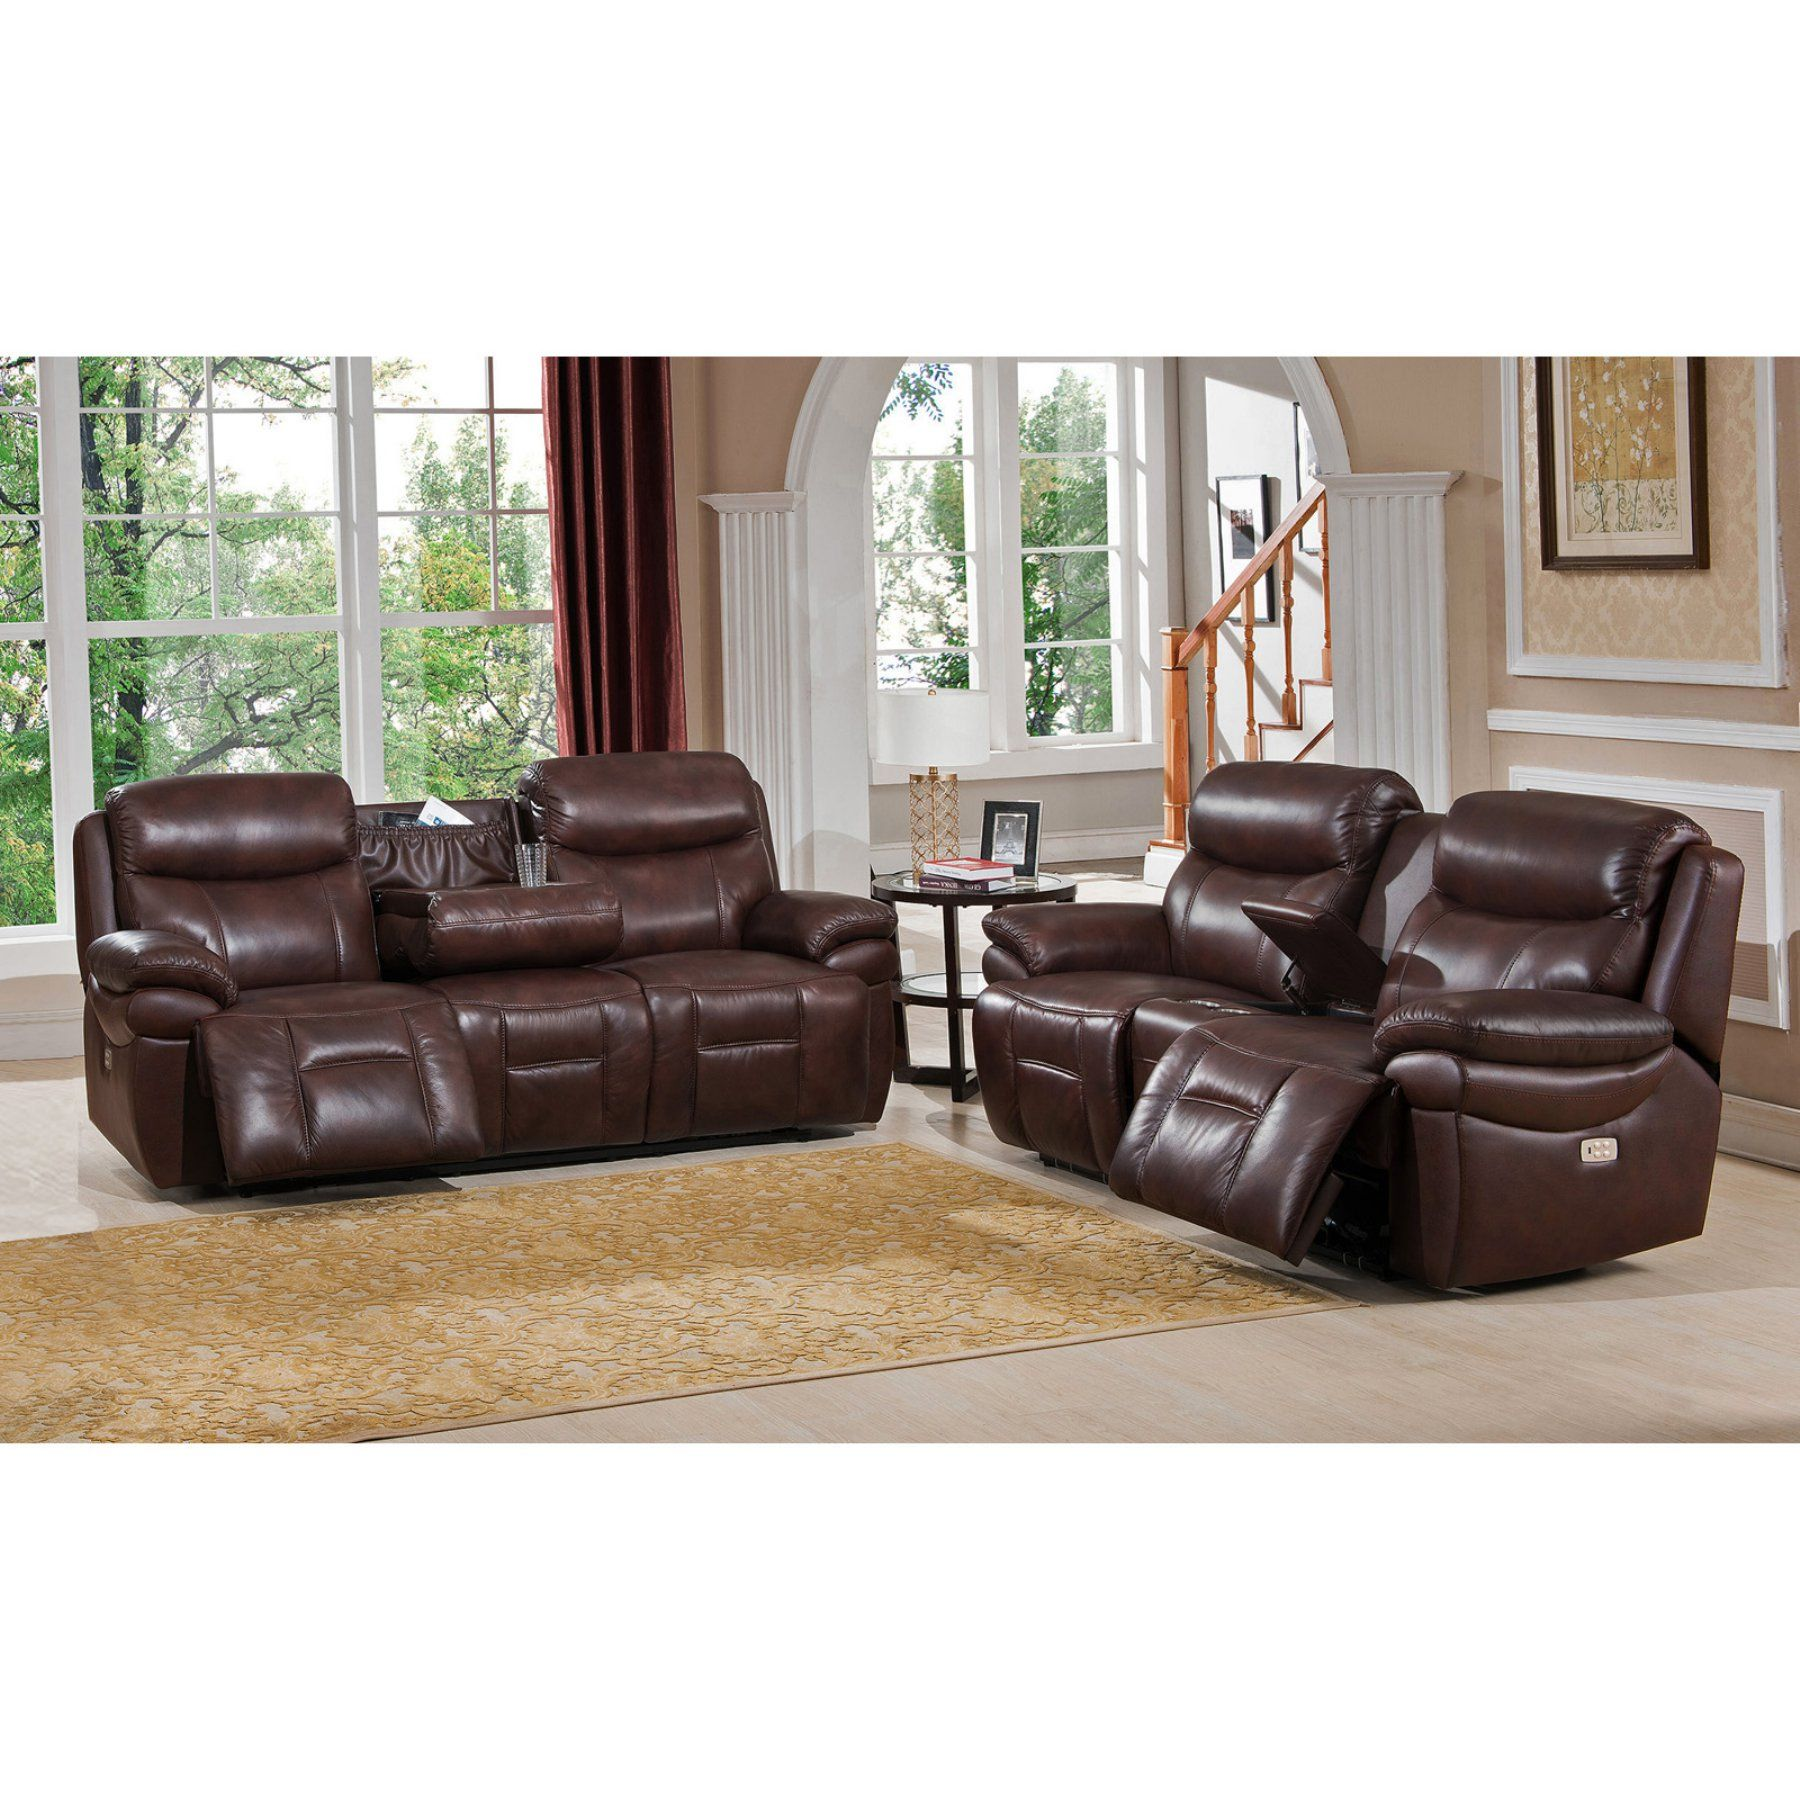 Amax Leather Summerlands II Top Grain Leather Power Reclining Sofa